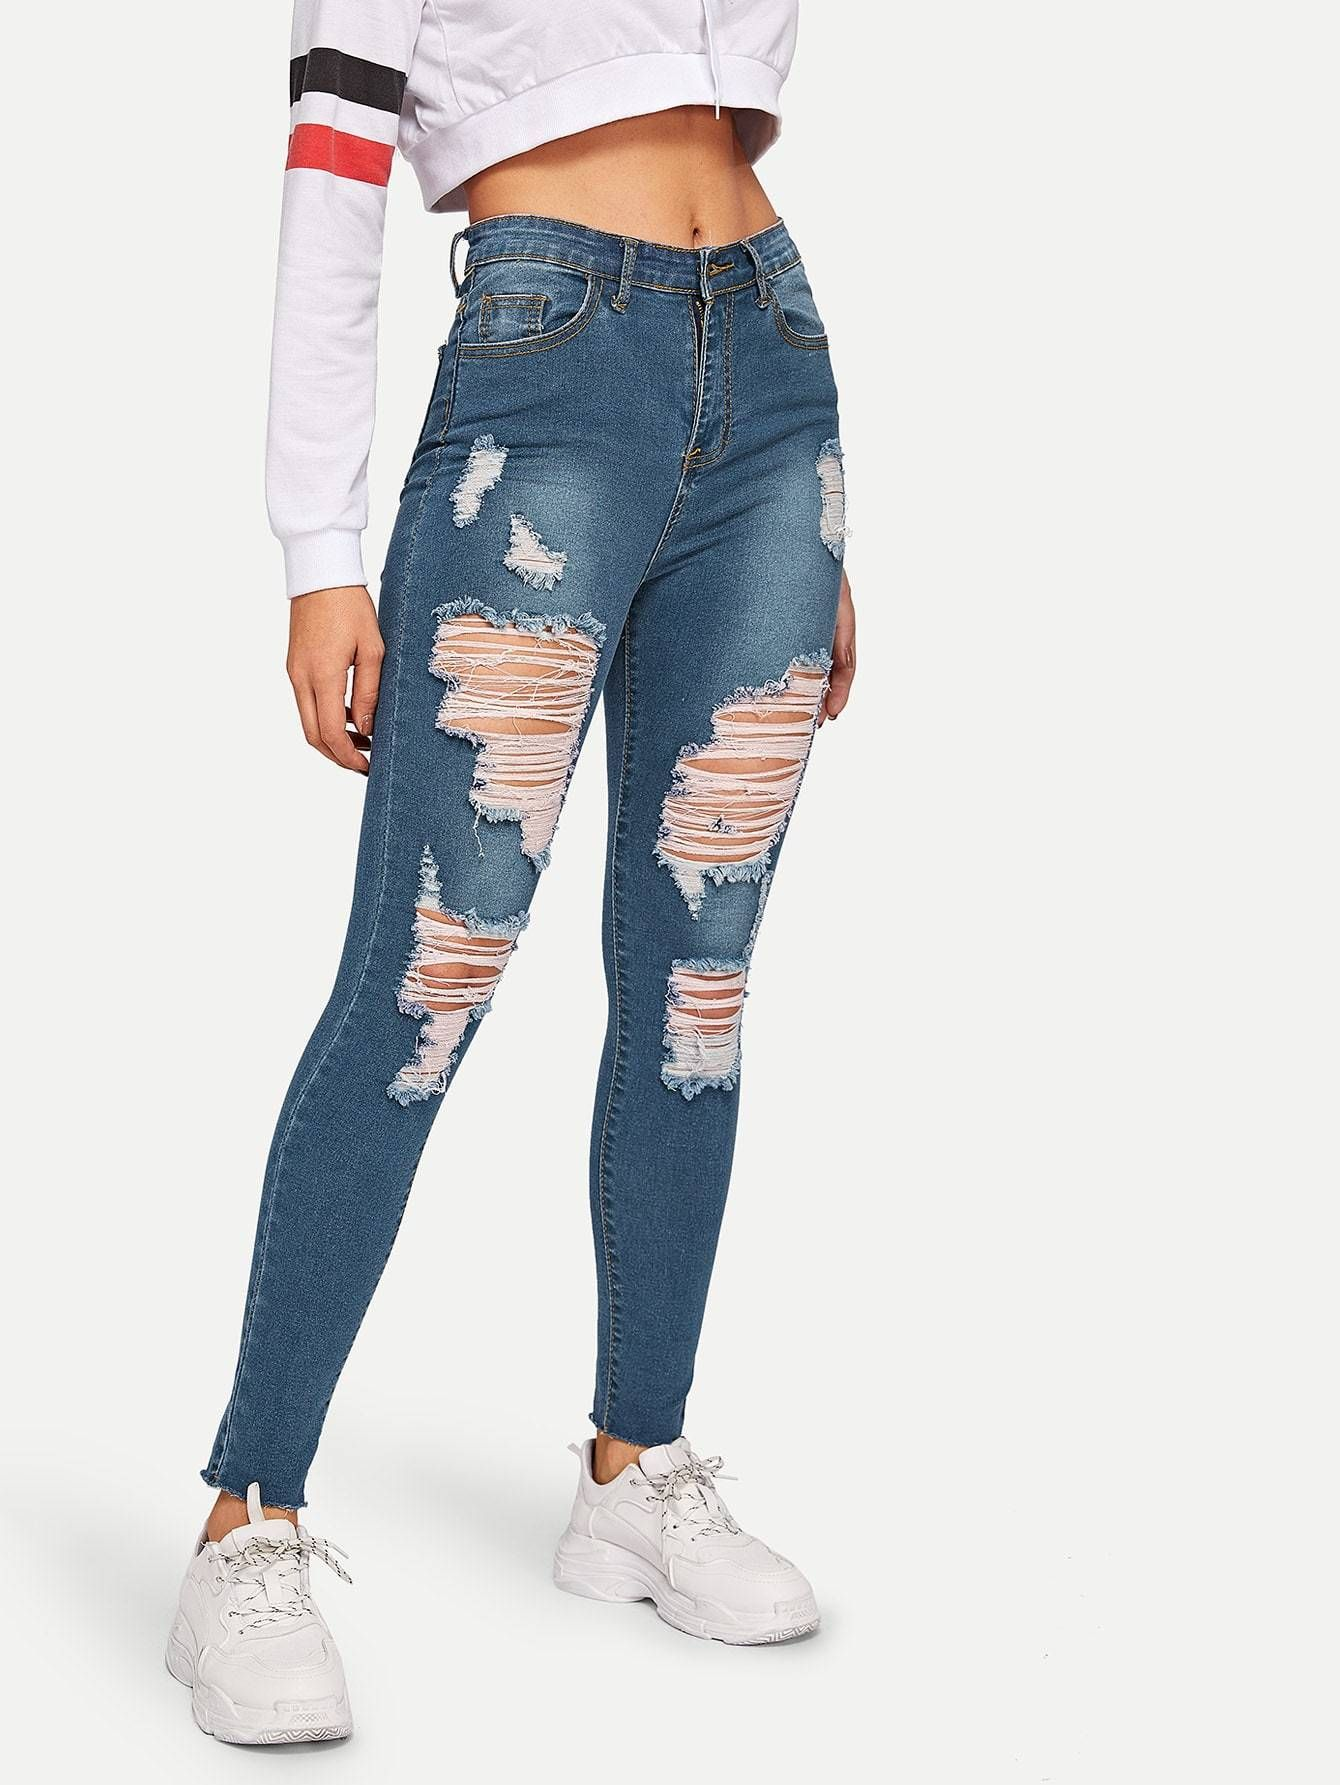 Best Women Jeans Faded Jeans Overall Jeans Palazzo Jeans